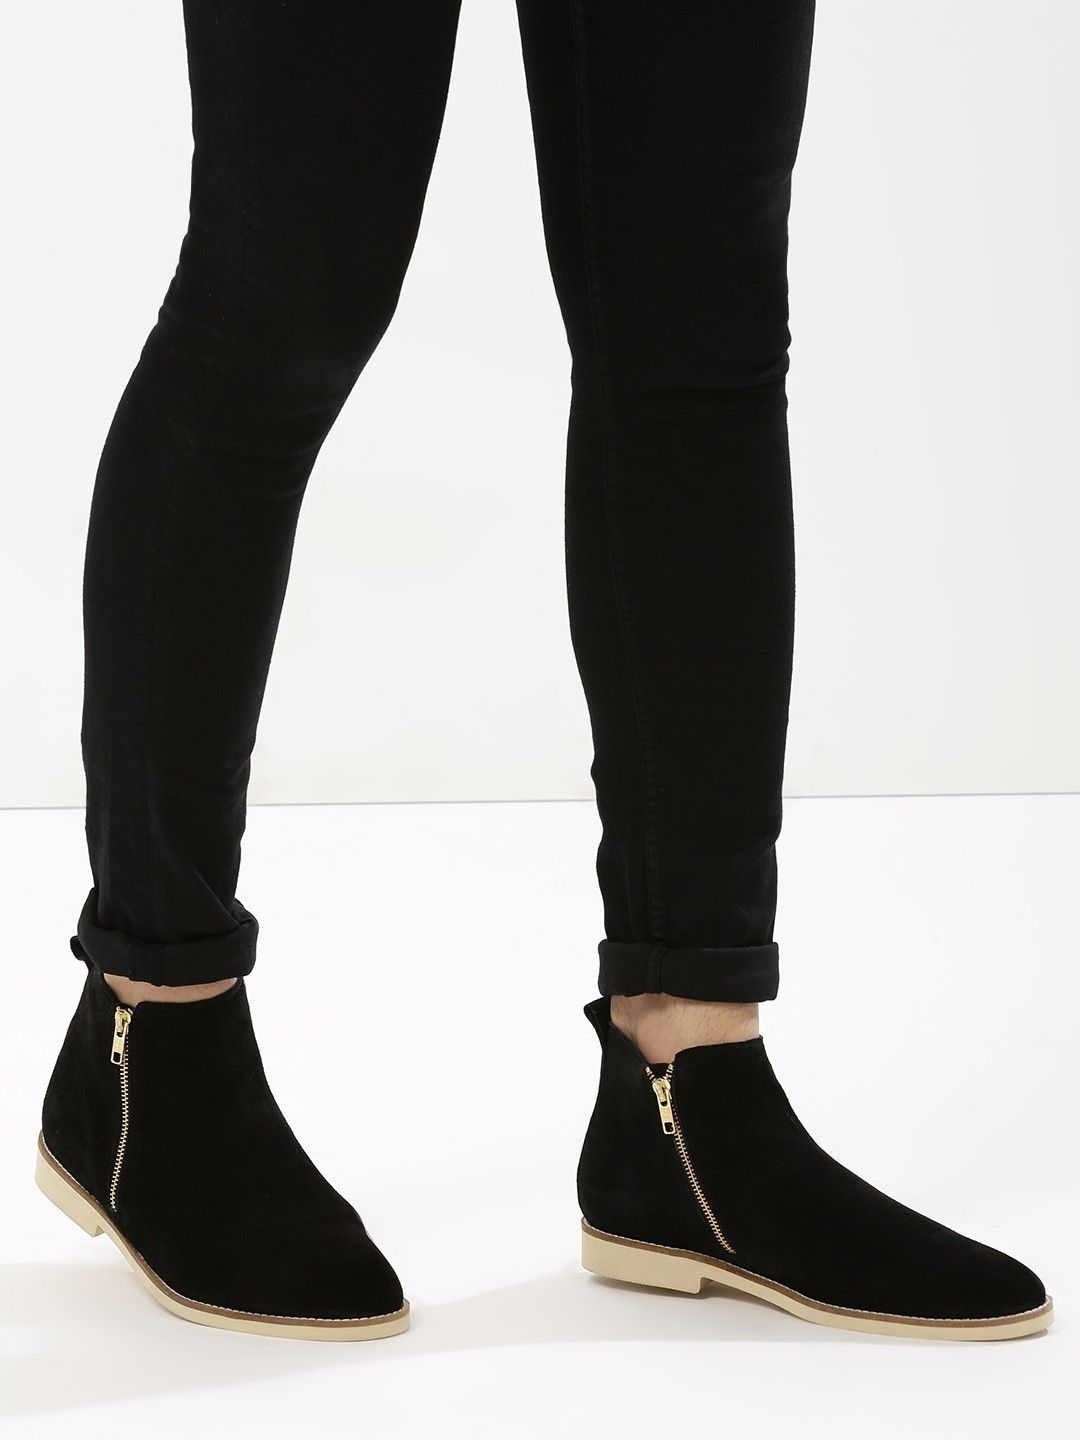 0f4b21b93 Buy Chelsea Boots in Genuine Suede Leather with Side Zipper For Men - Men s  Black Boots Online in India